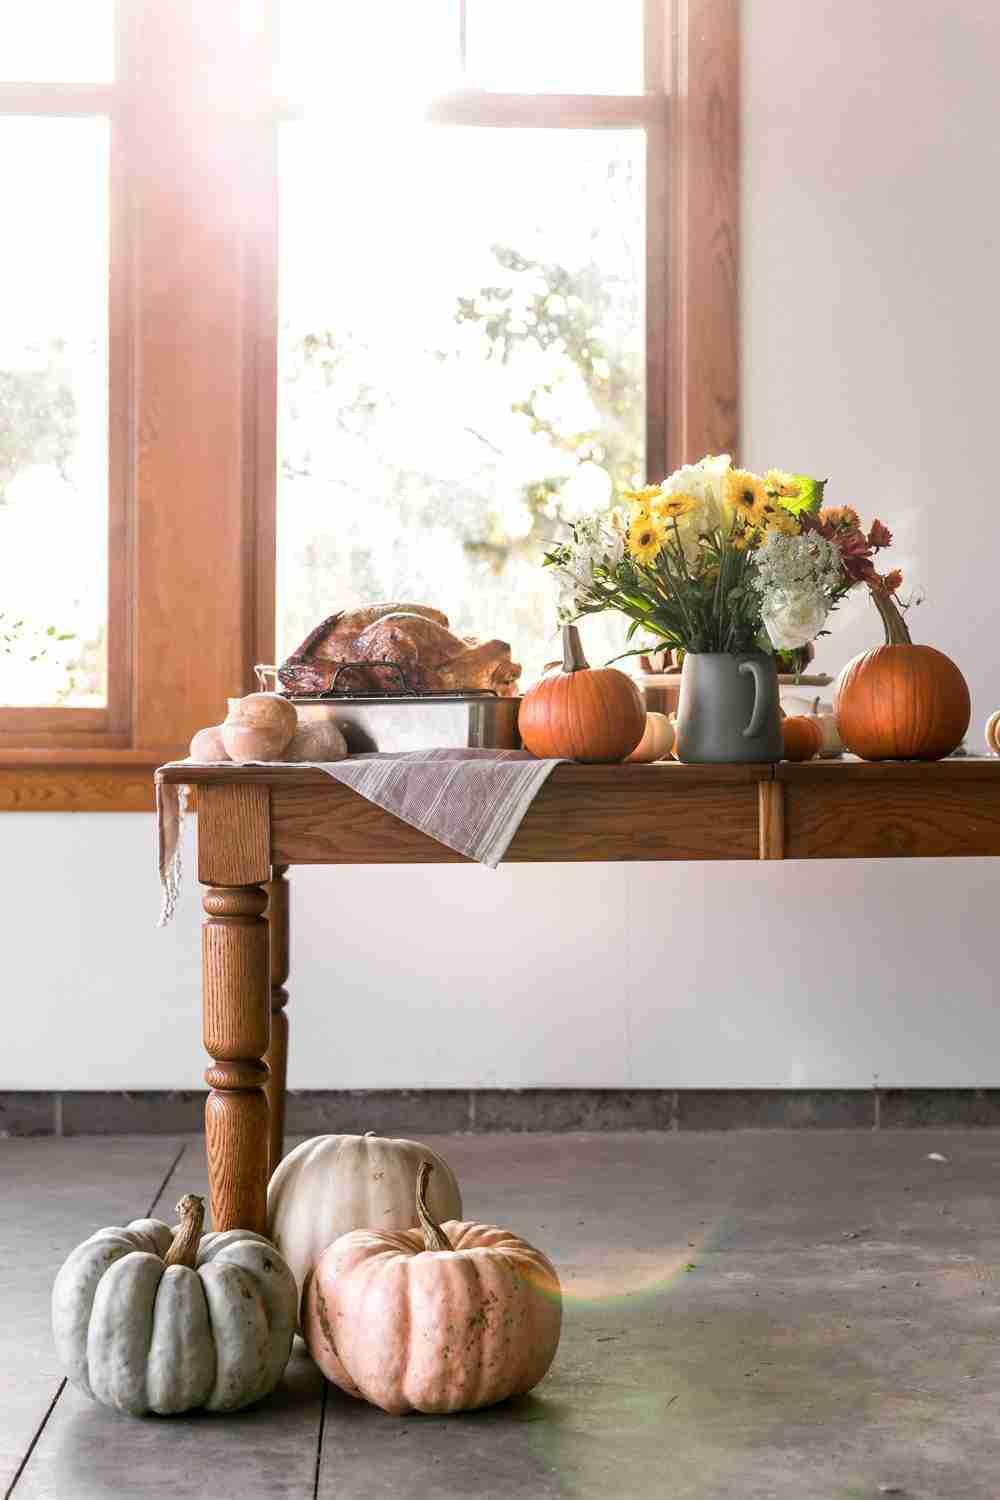 10 Tips for Hosting Thanksgiving